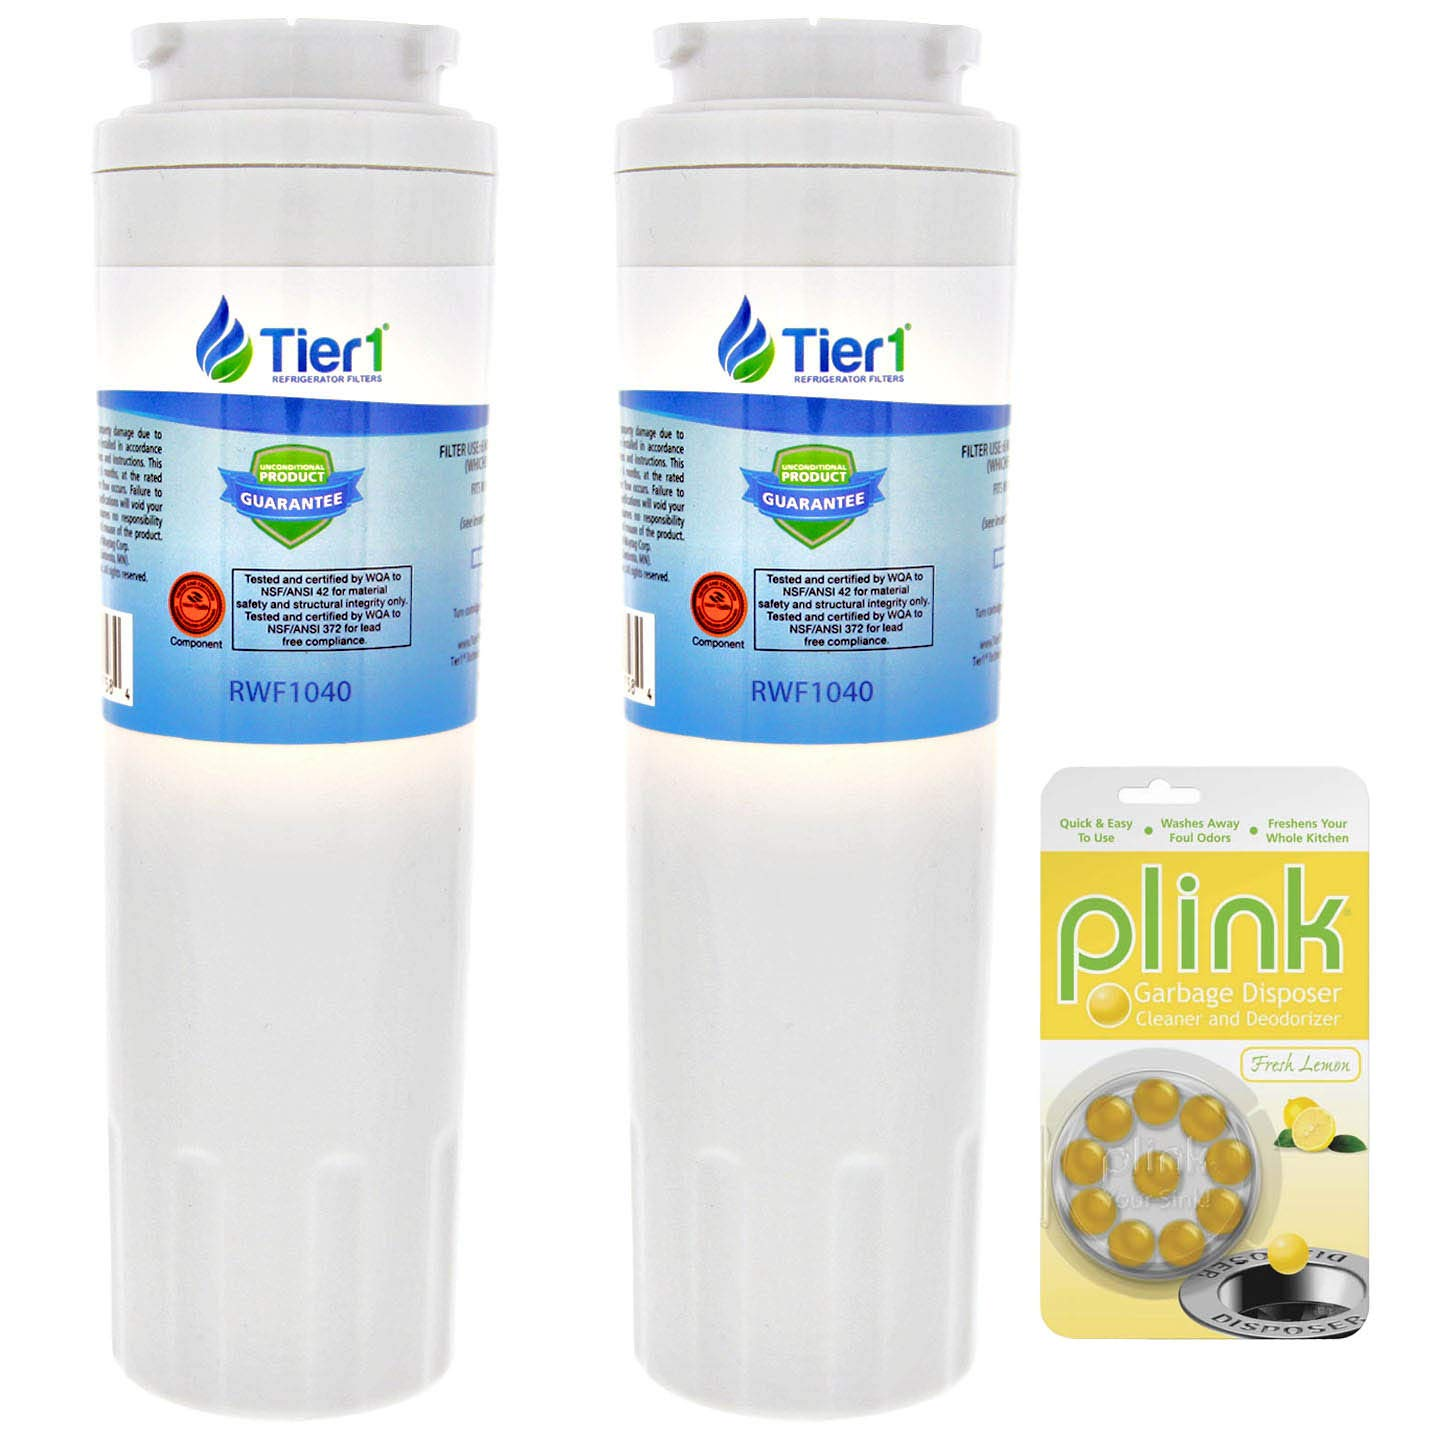 Tier1 Replacement for EveryDrop EDR4RXD1 Maytag UKF8001 Refrigerator Water Filter (3 Pack) and Garba